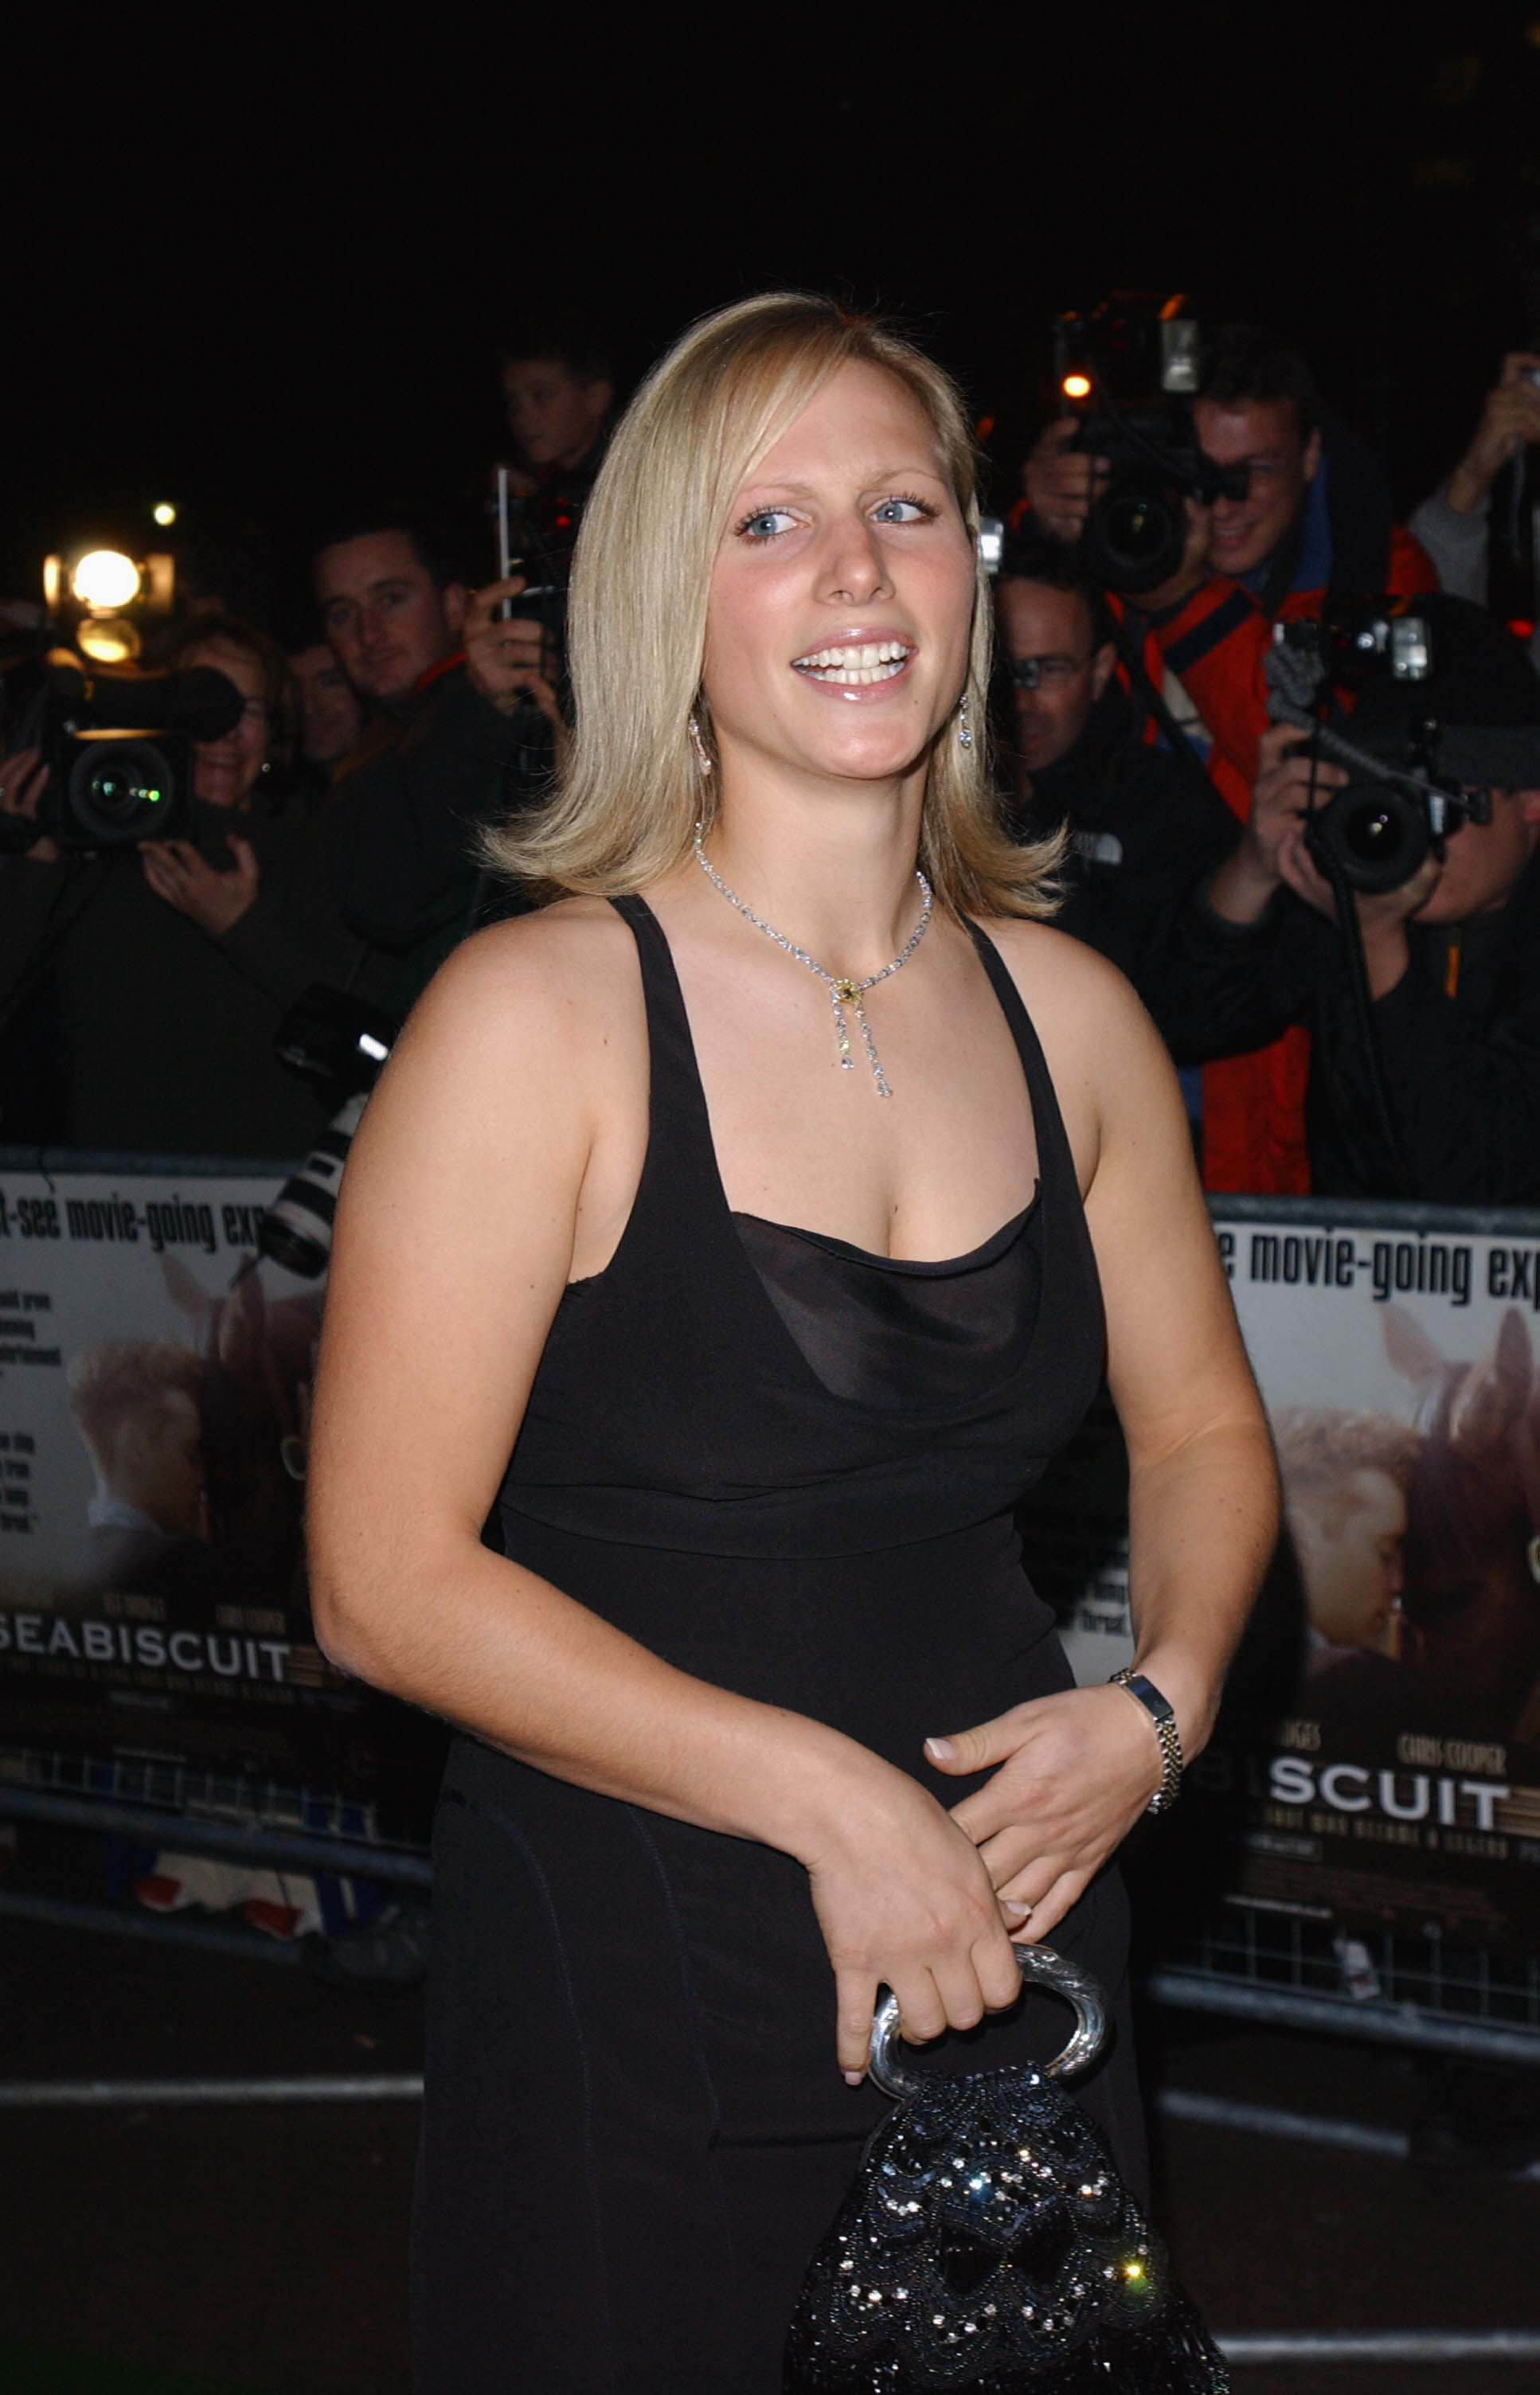 Zara Phillips hot pictures